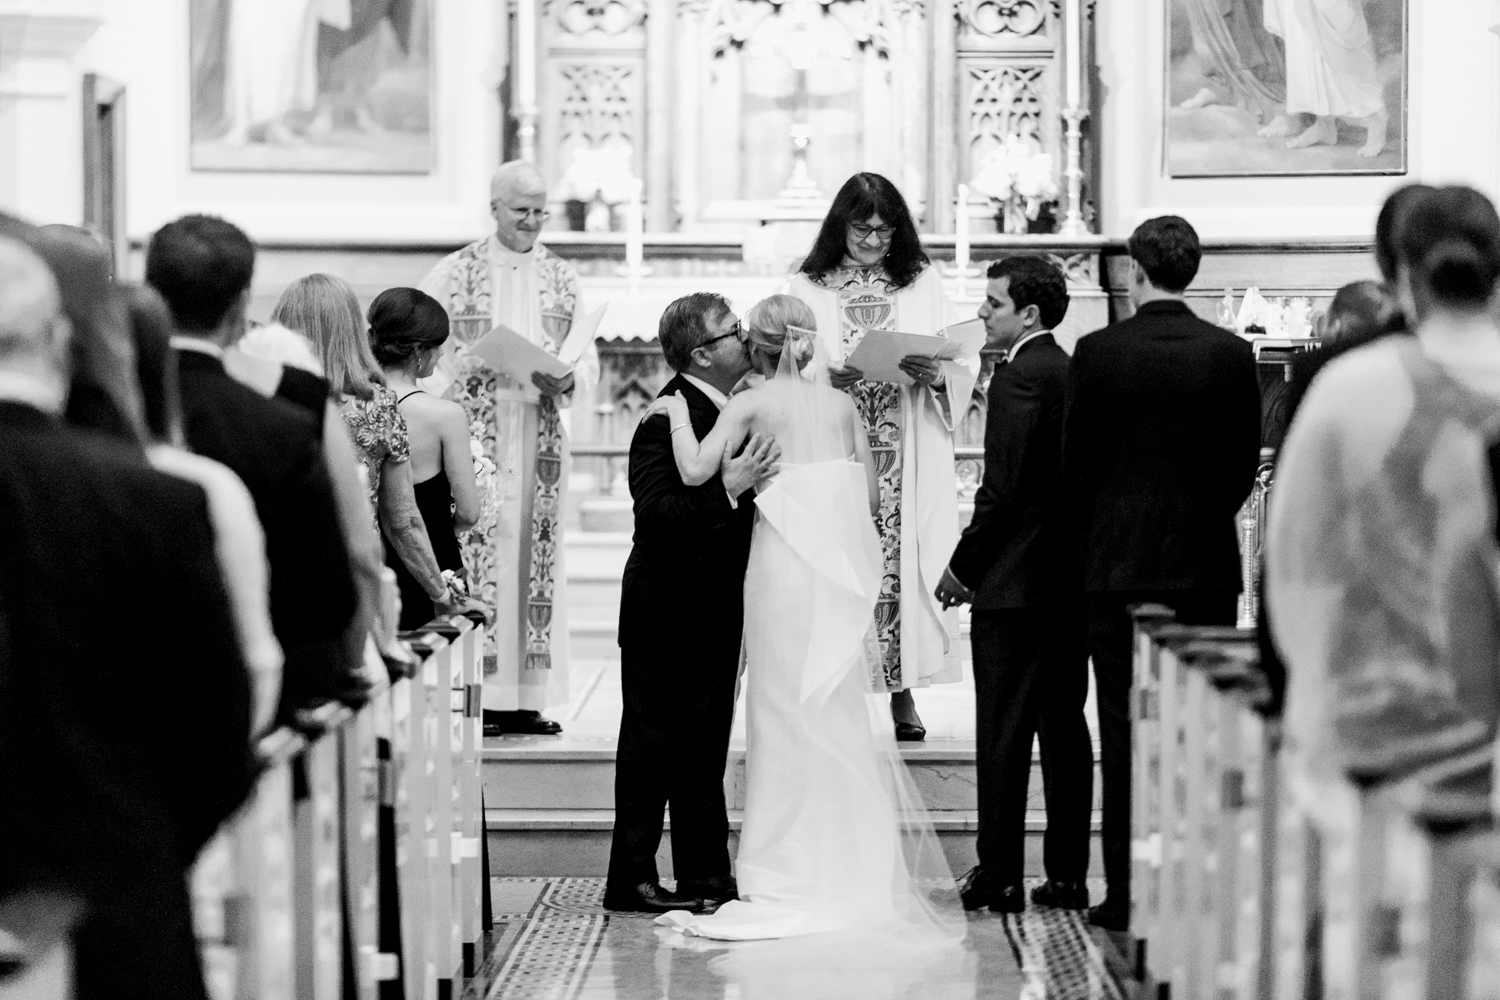 Georgetown wedding - Classic ceremony at St John's Episcopal